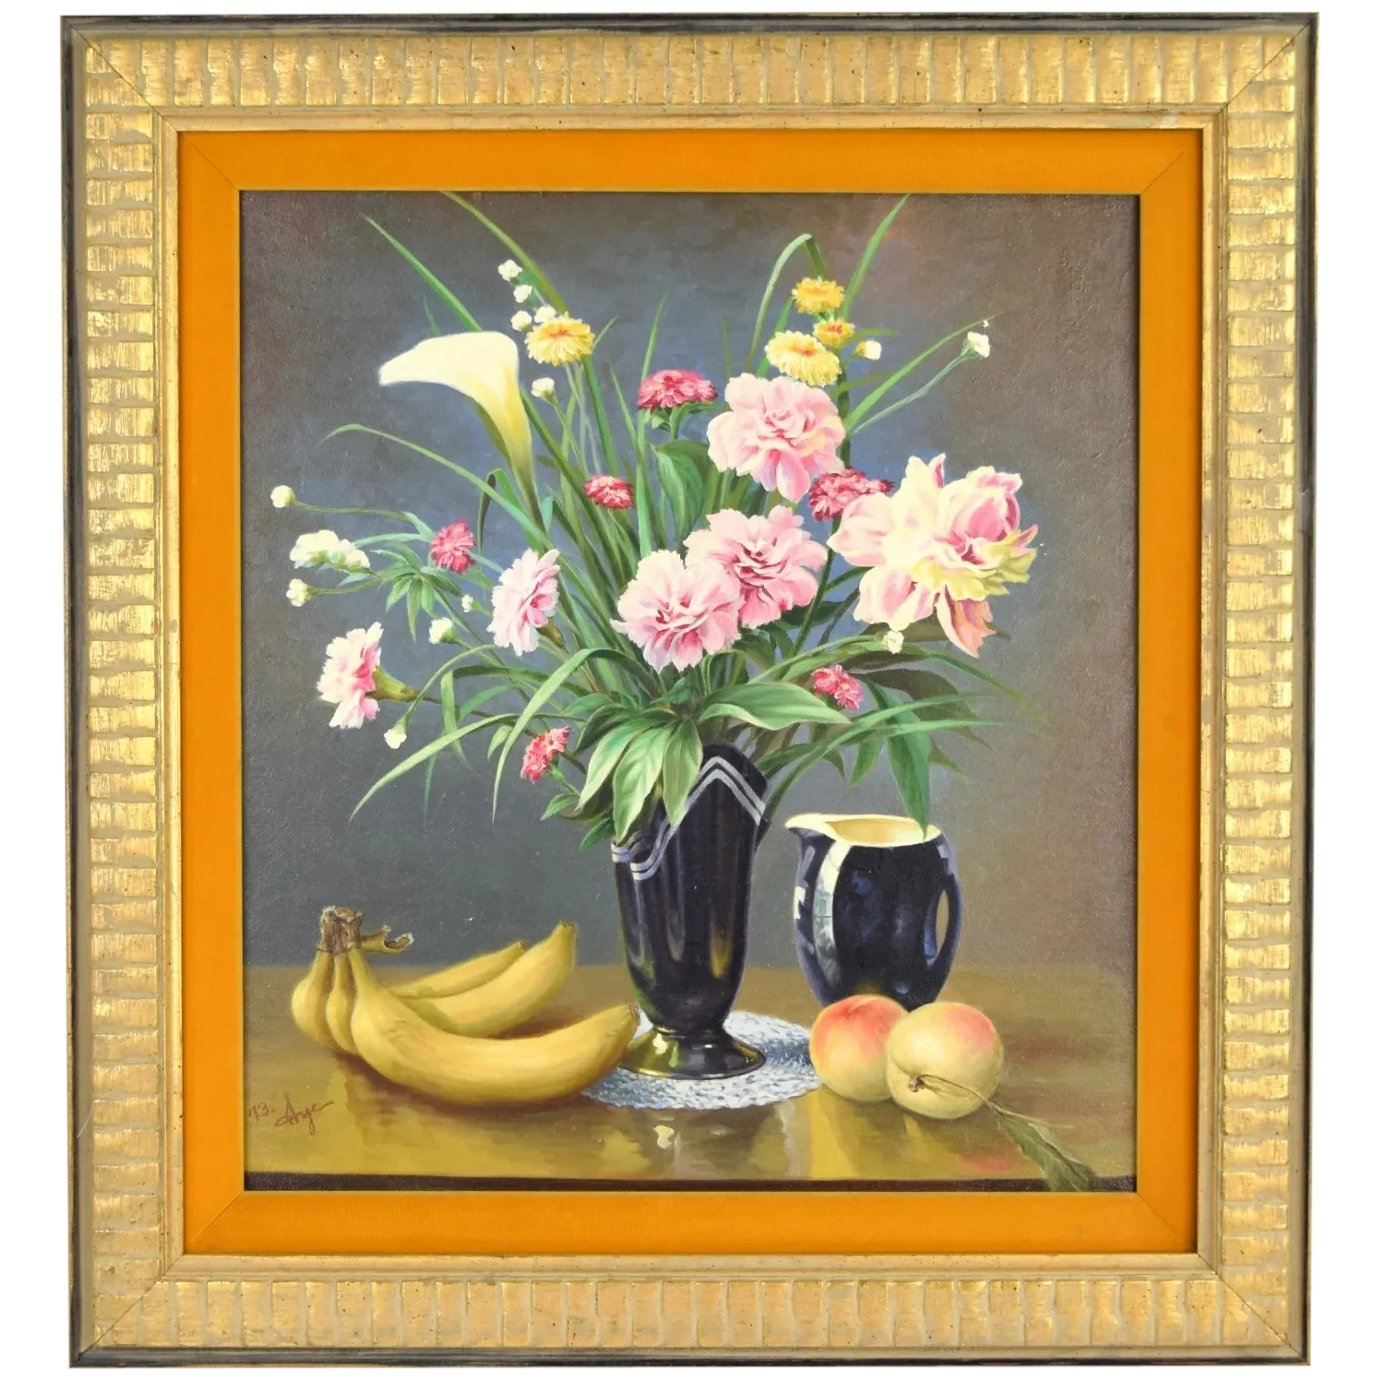 1973 Finely Rendered Realist Still Life Oil Painting Flowers Bananas Colin Reed Art Antiques Ruby Lane